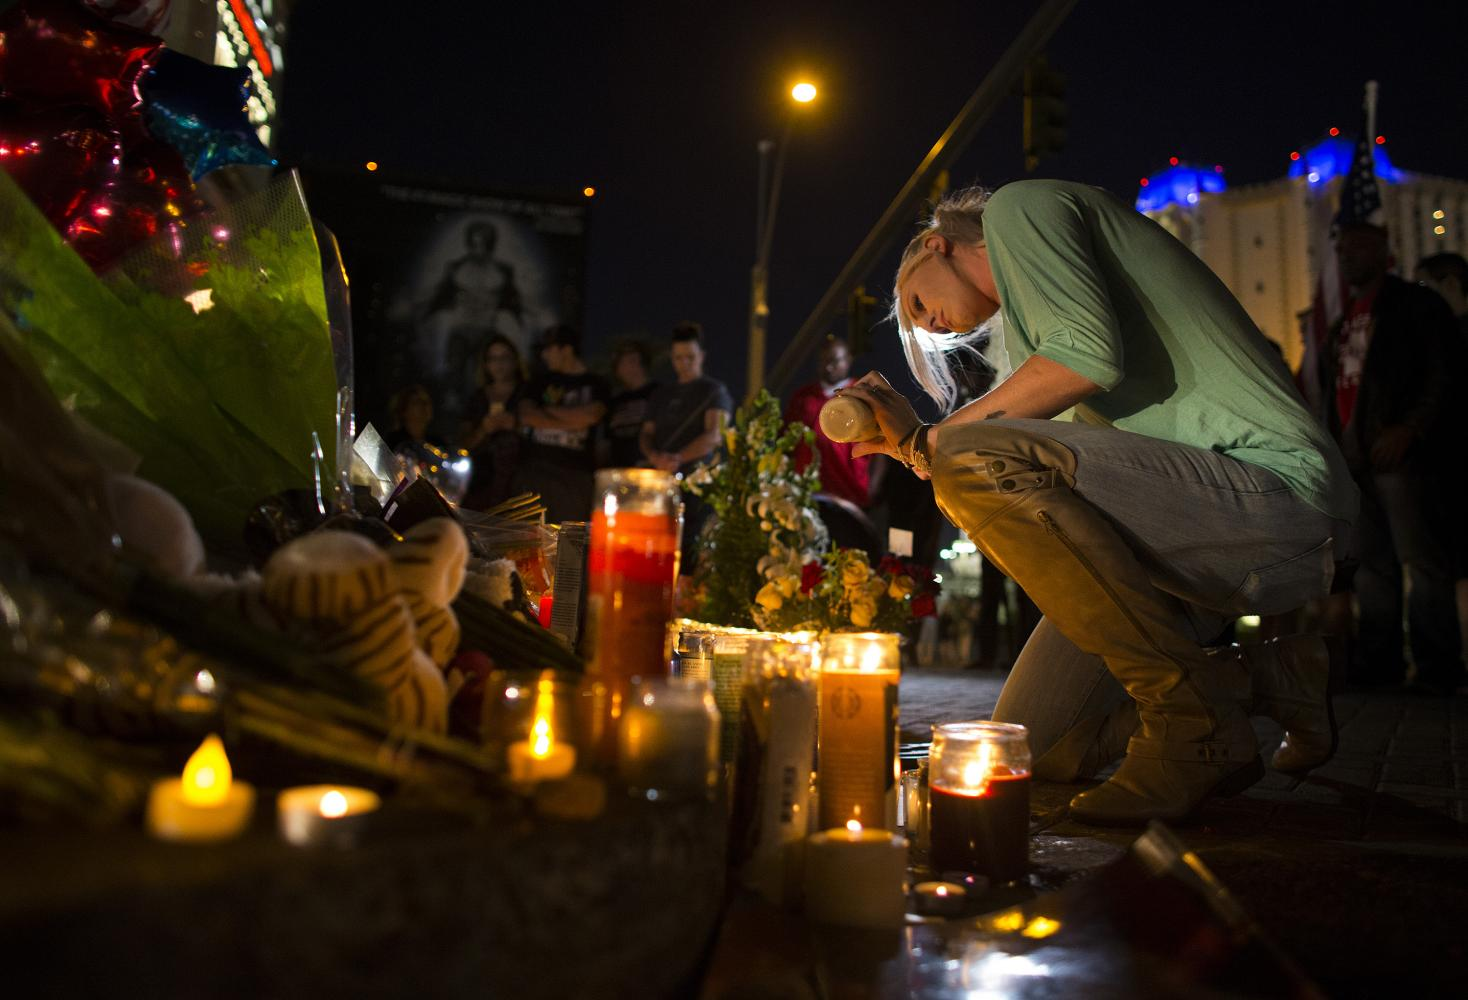 Kaili Berdge of Scottsdale, Ariz. makes sure every candle stays lit Wednesday, Oct. 4, 2017 at a memorial for the victims of the mass shooting near the crime scene off Las Vegas Boulevard in Las Vegas, Nev. (Gina Ferazzi/Los Angeles Times/TNS)